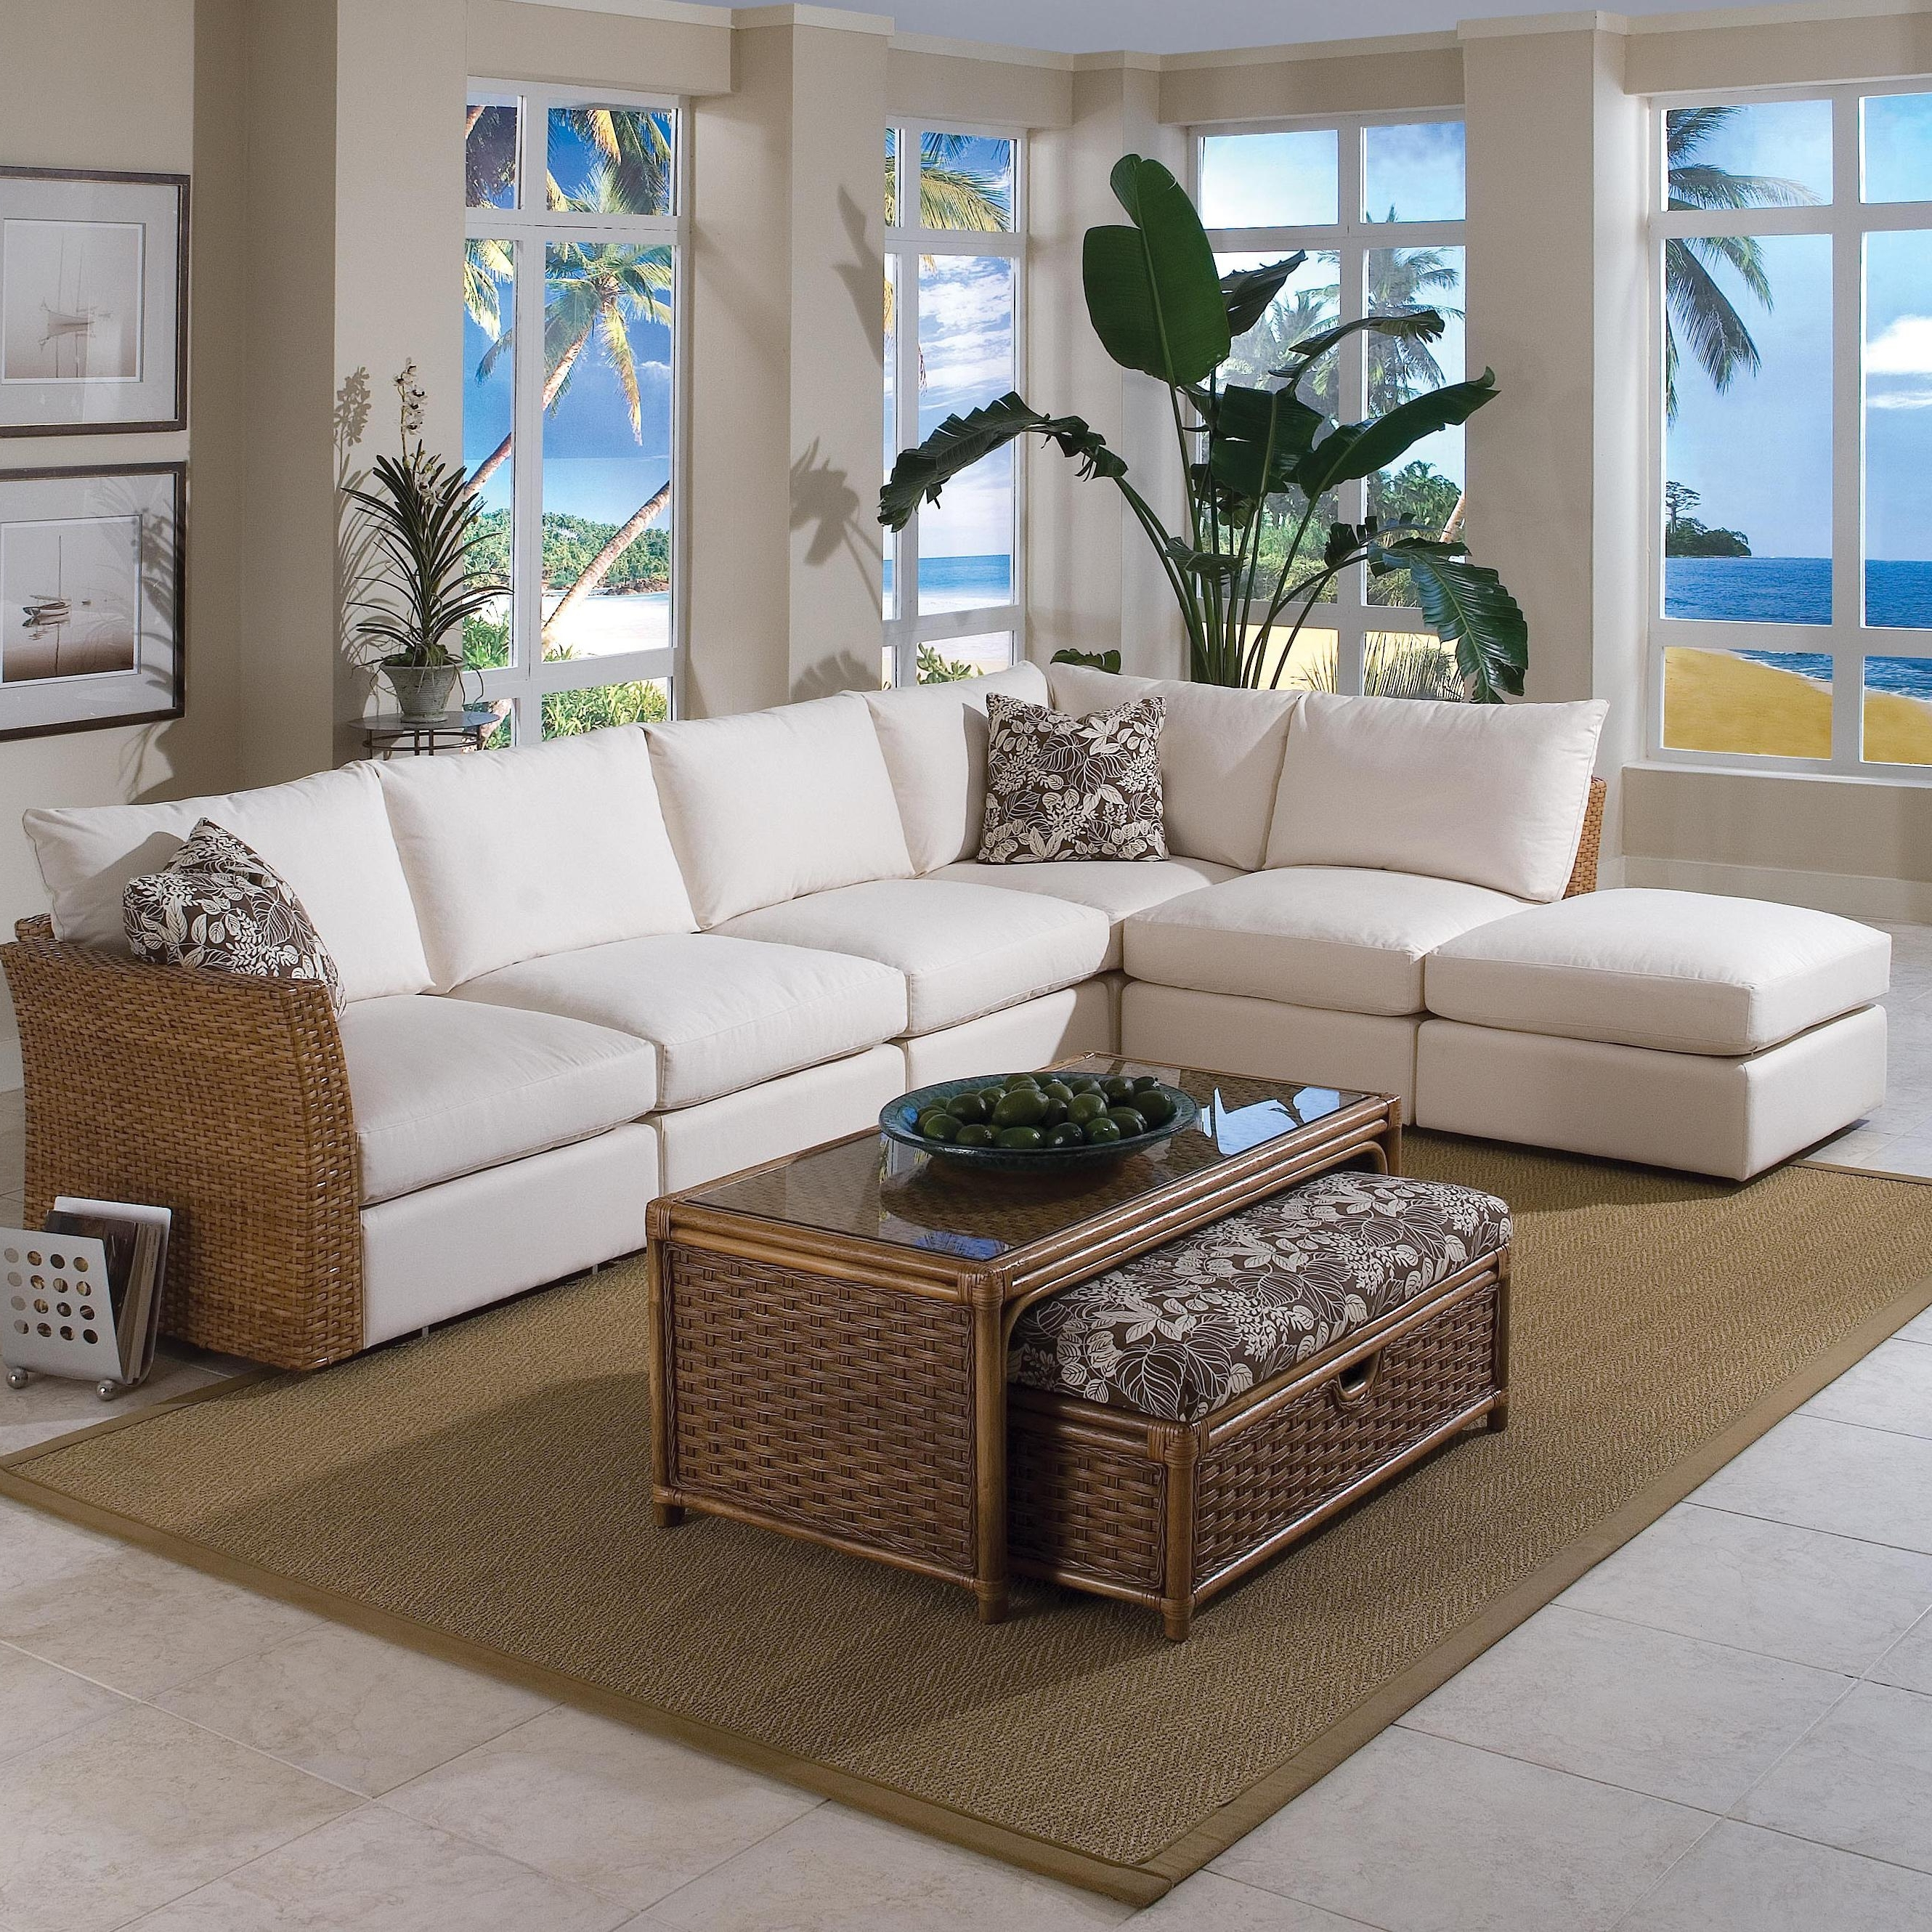 Newest Braxton Culler Grand Water Point Tropical Sectional Sofa With Two For Grand Rapids Mi Sectional Sofas (View 15 of 20)